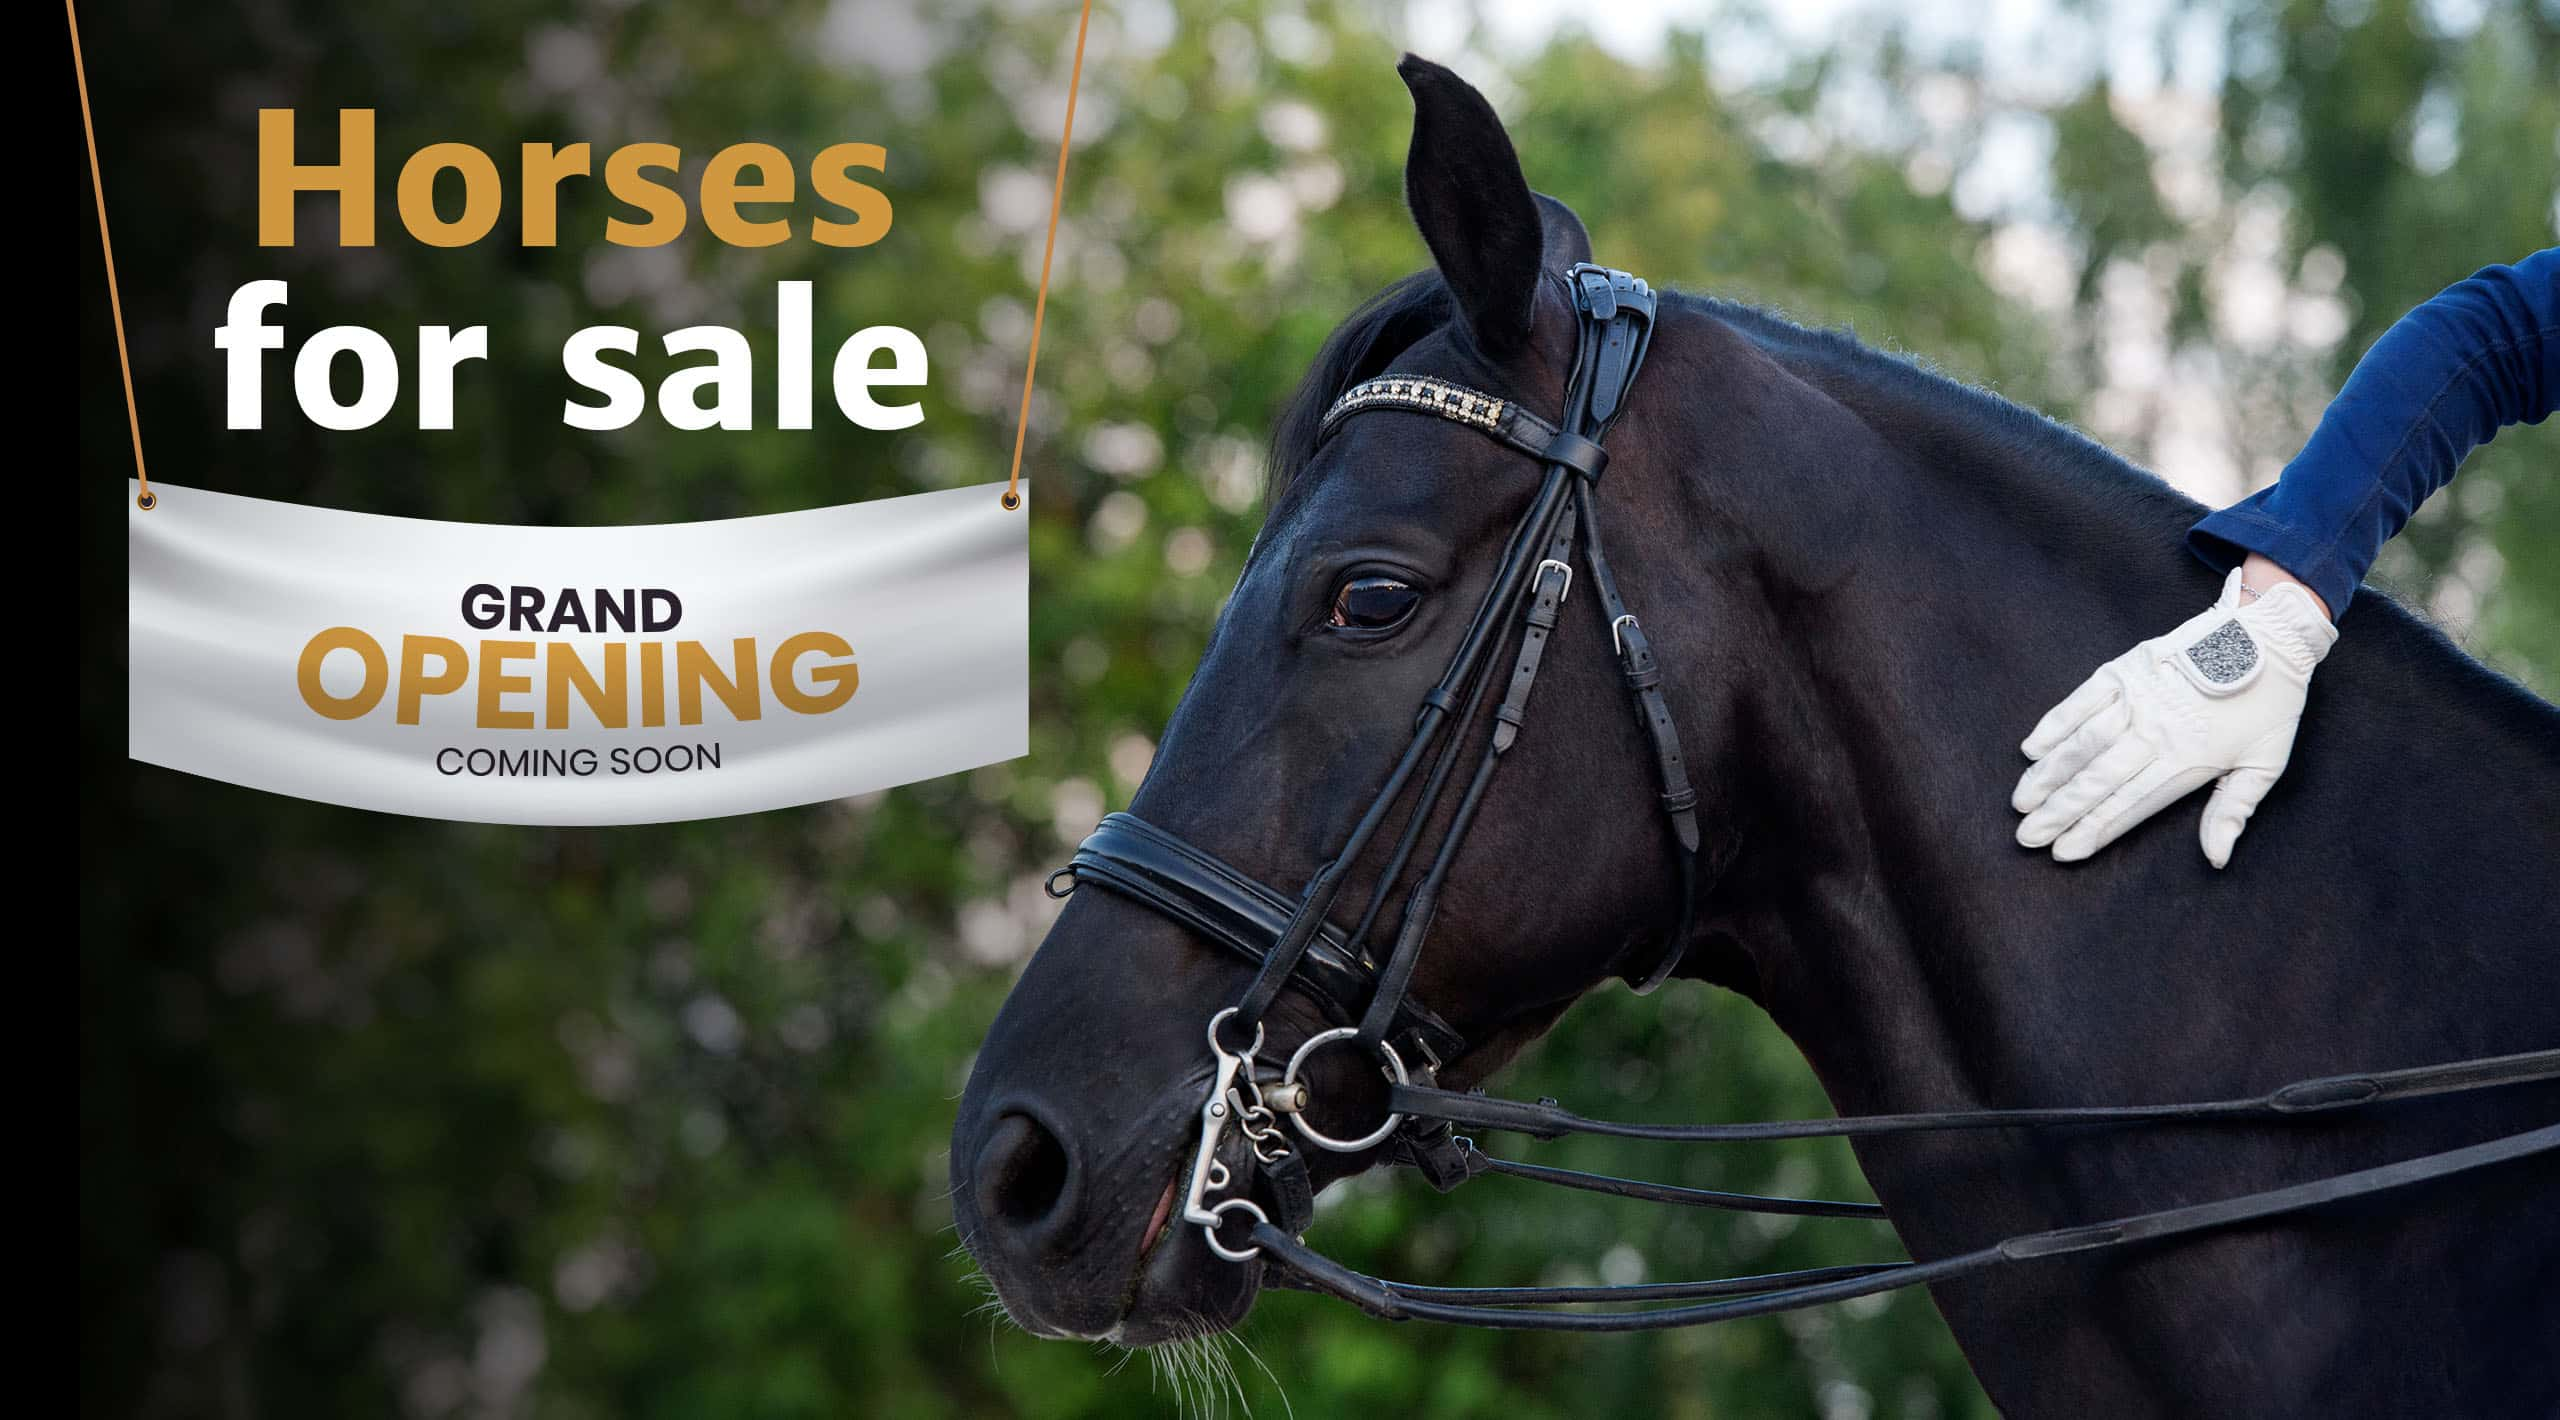 horses-for-sale-phr